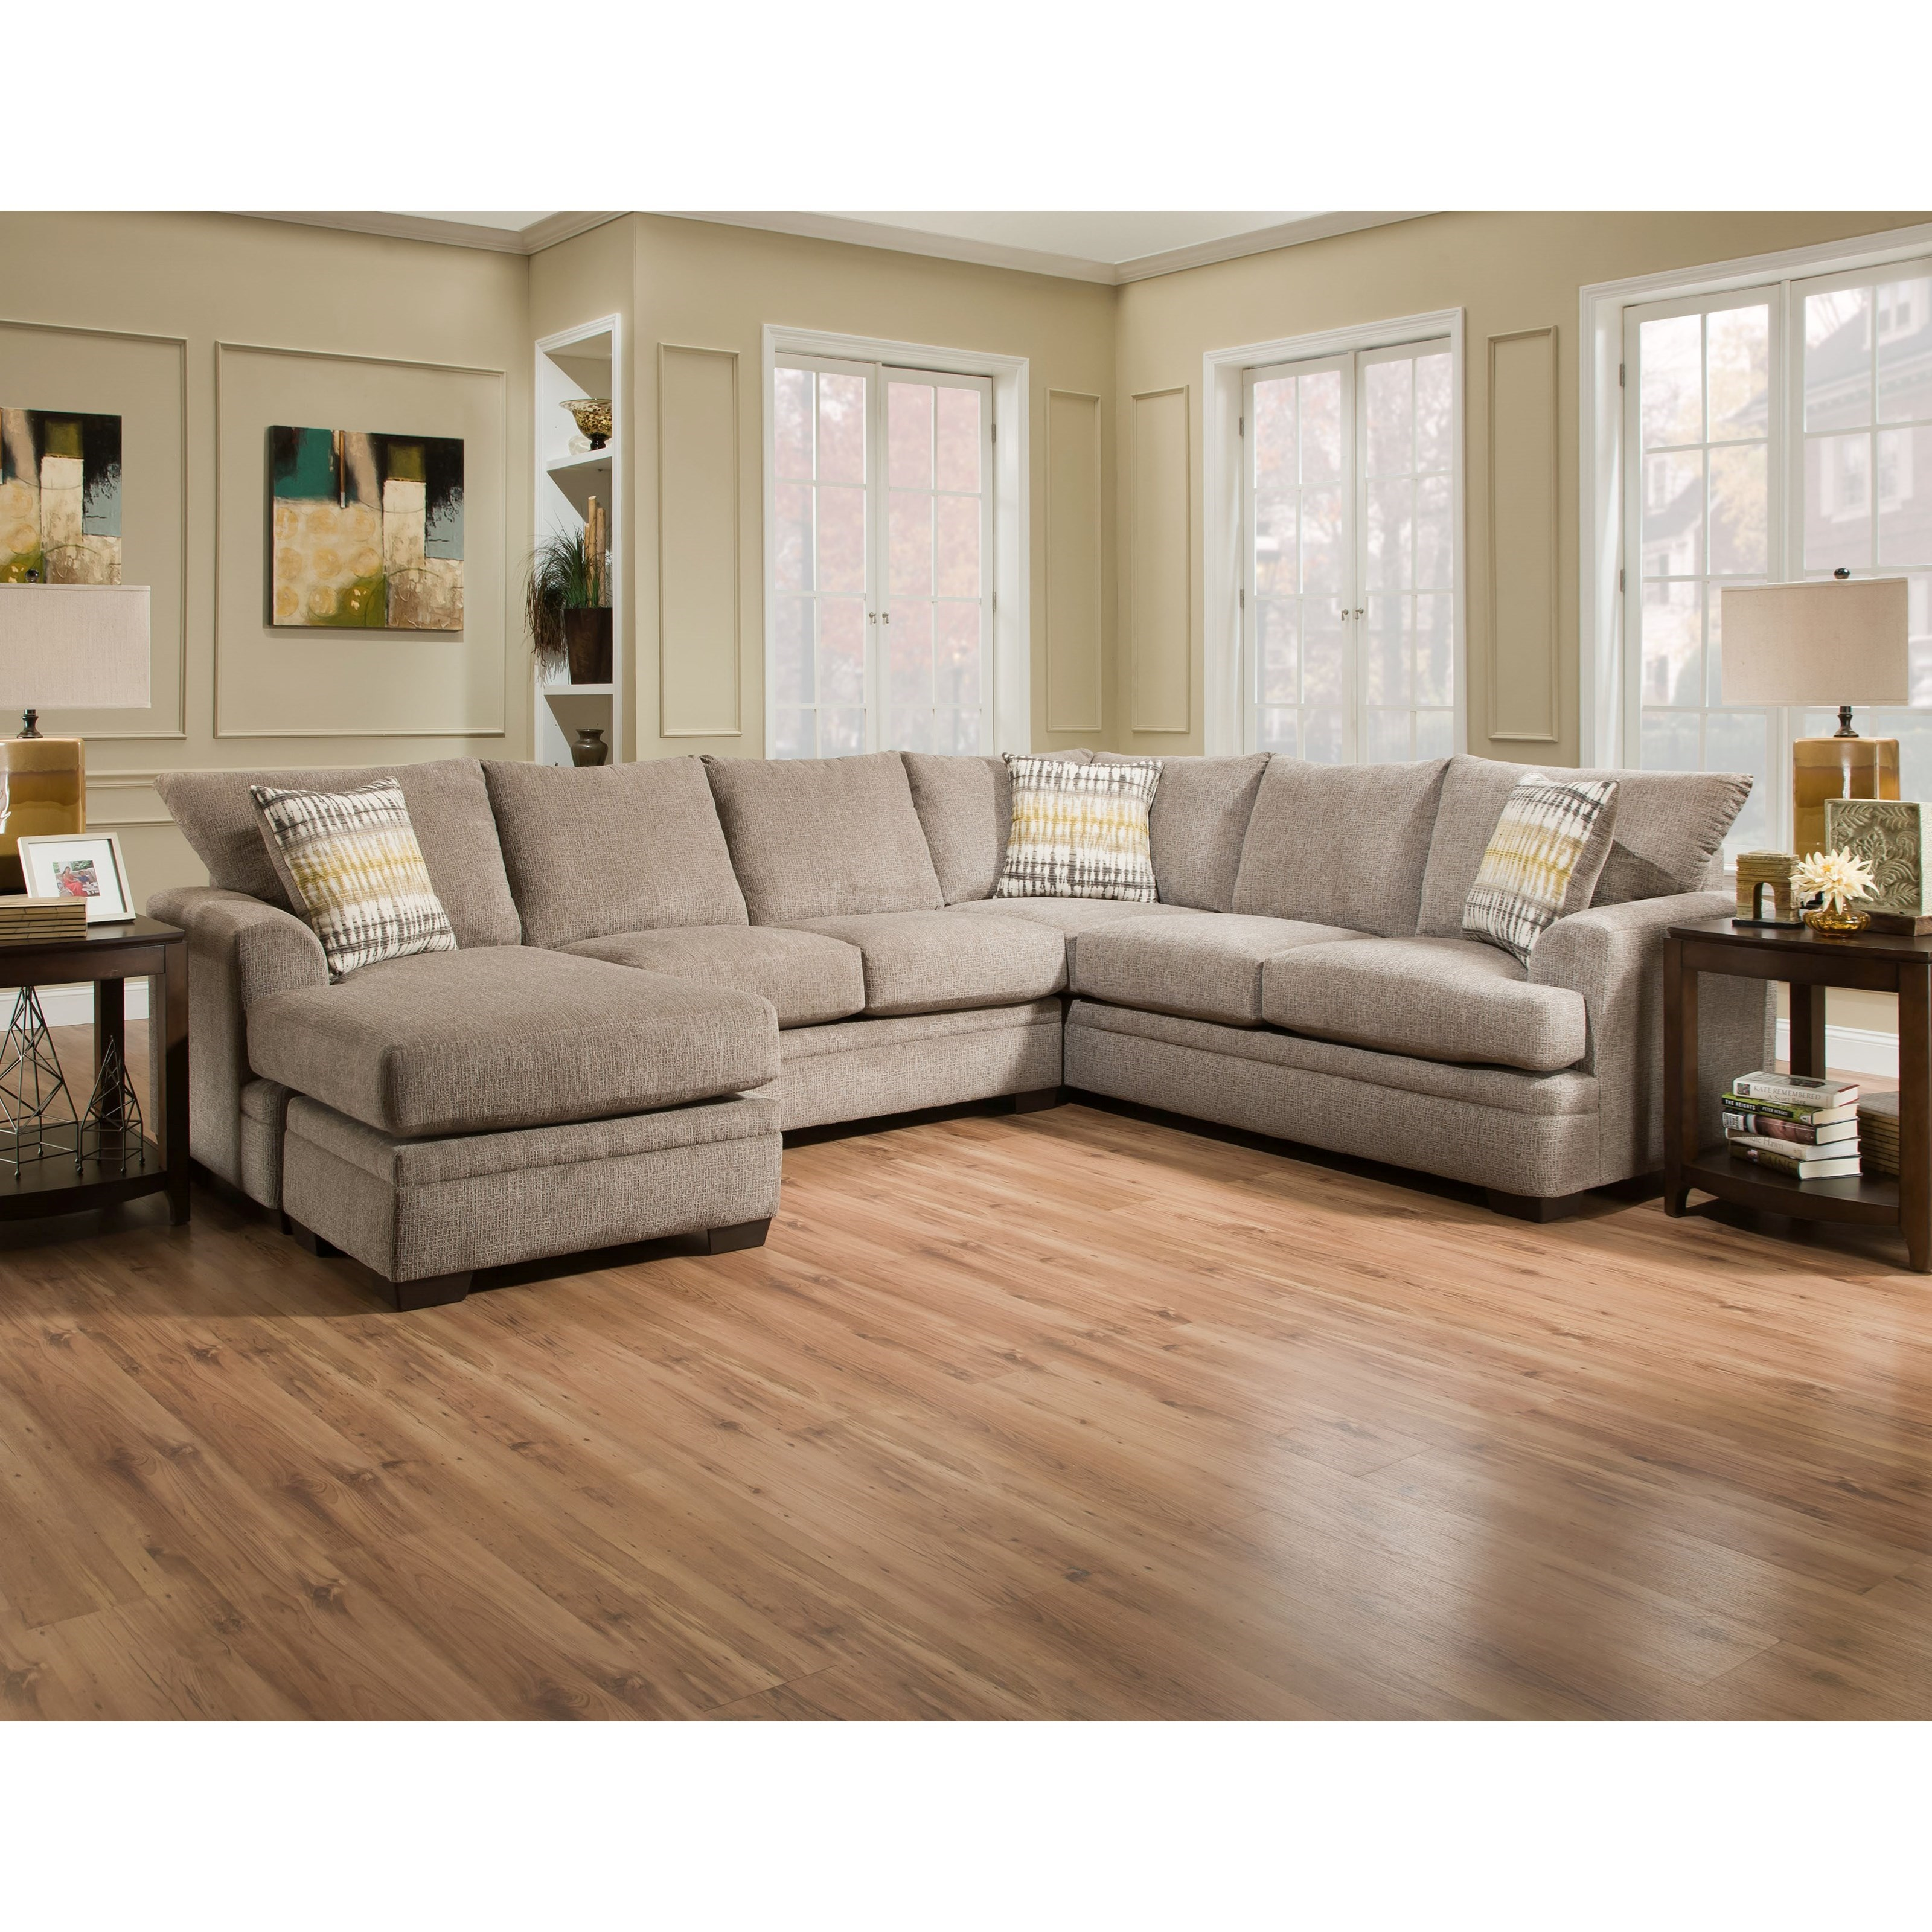 Sectional Bed Sofa 6800 Sectional Sofa With Left Side Chaise By American Furniture At Miskelly Furniture